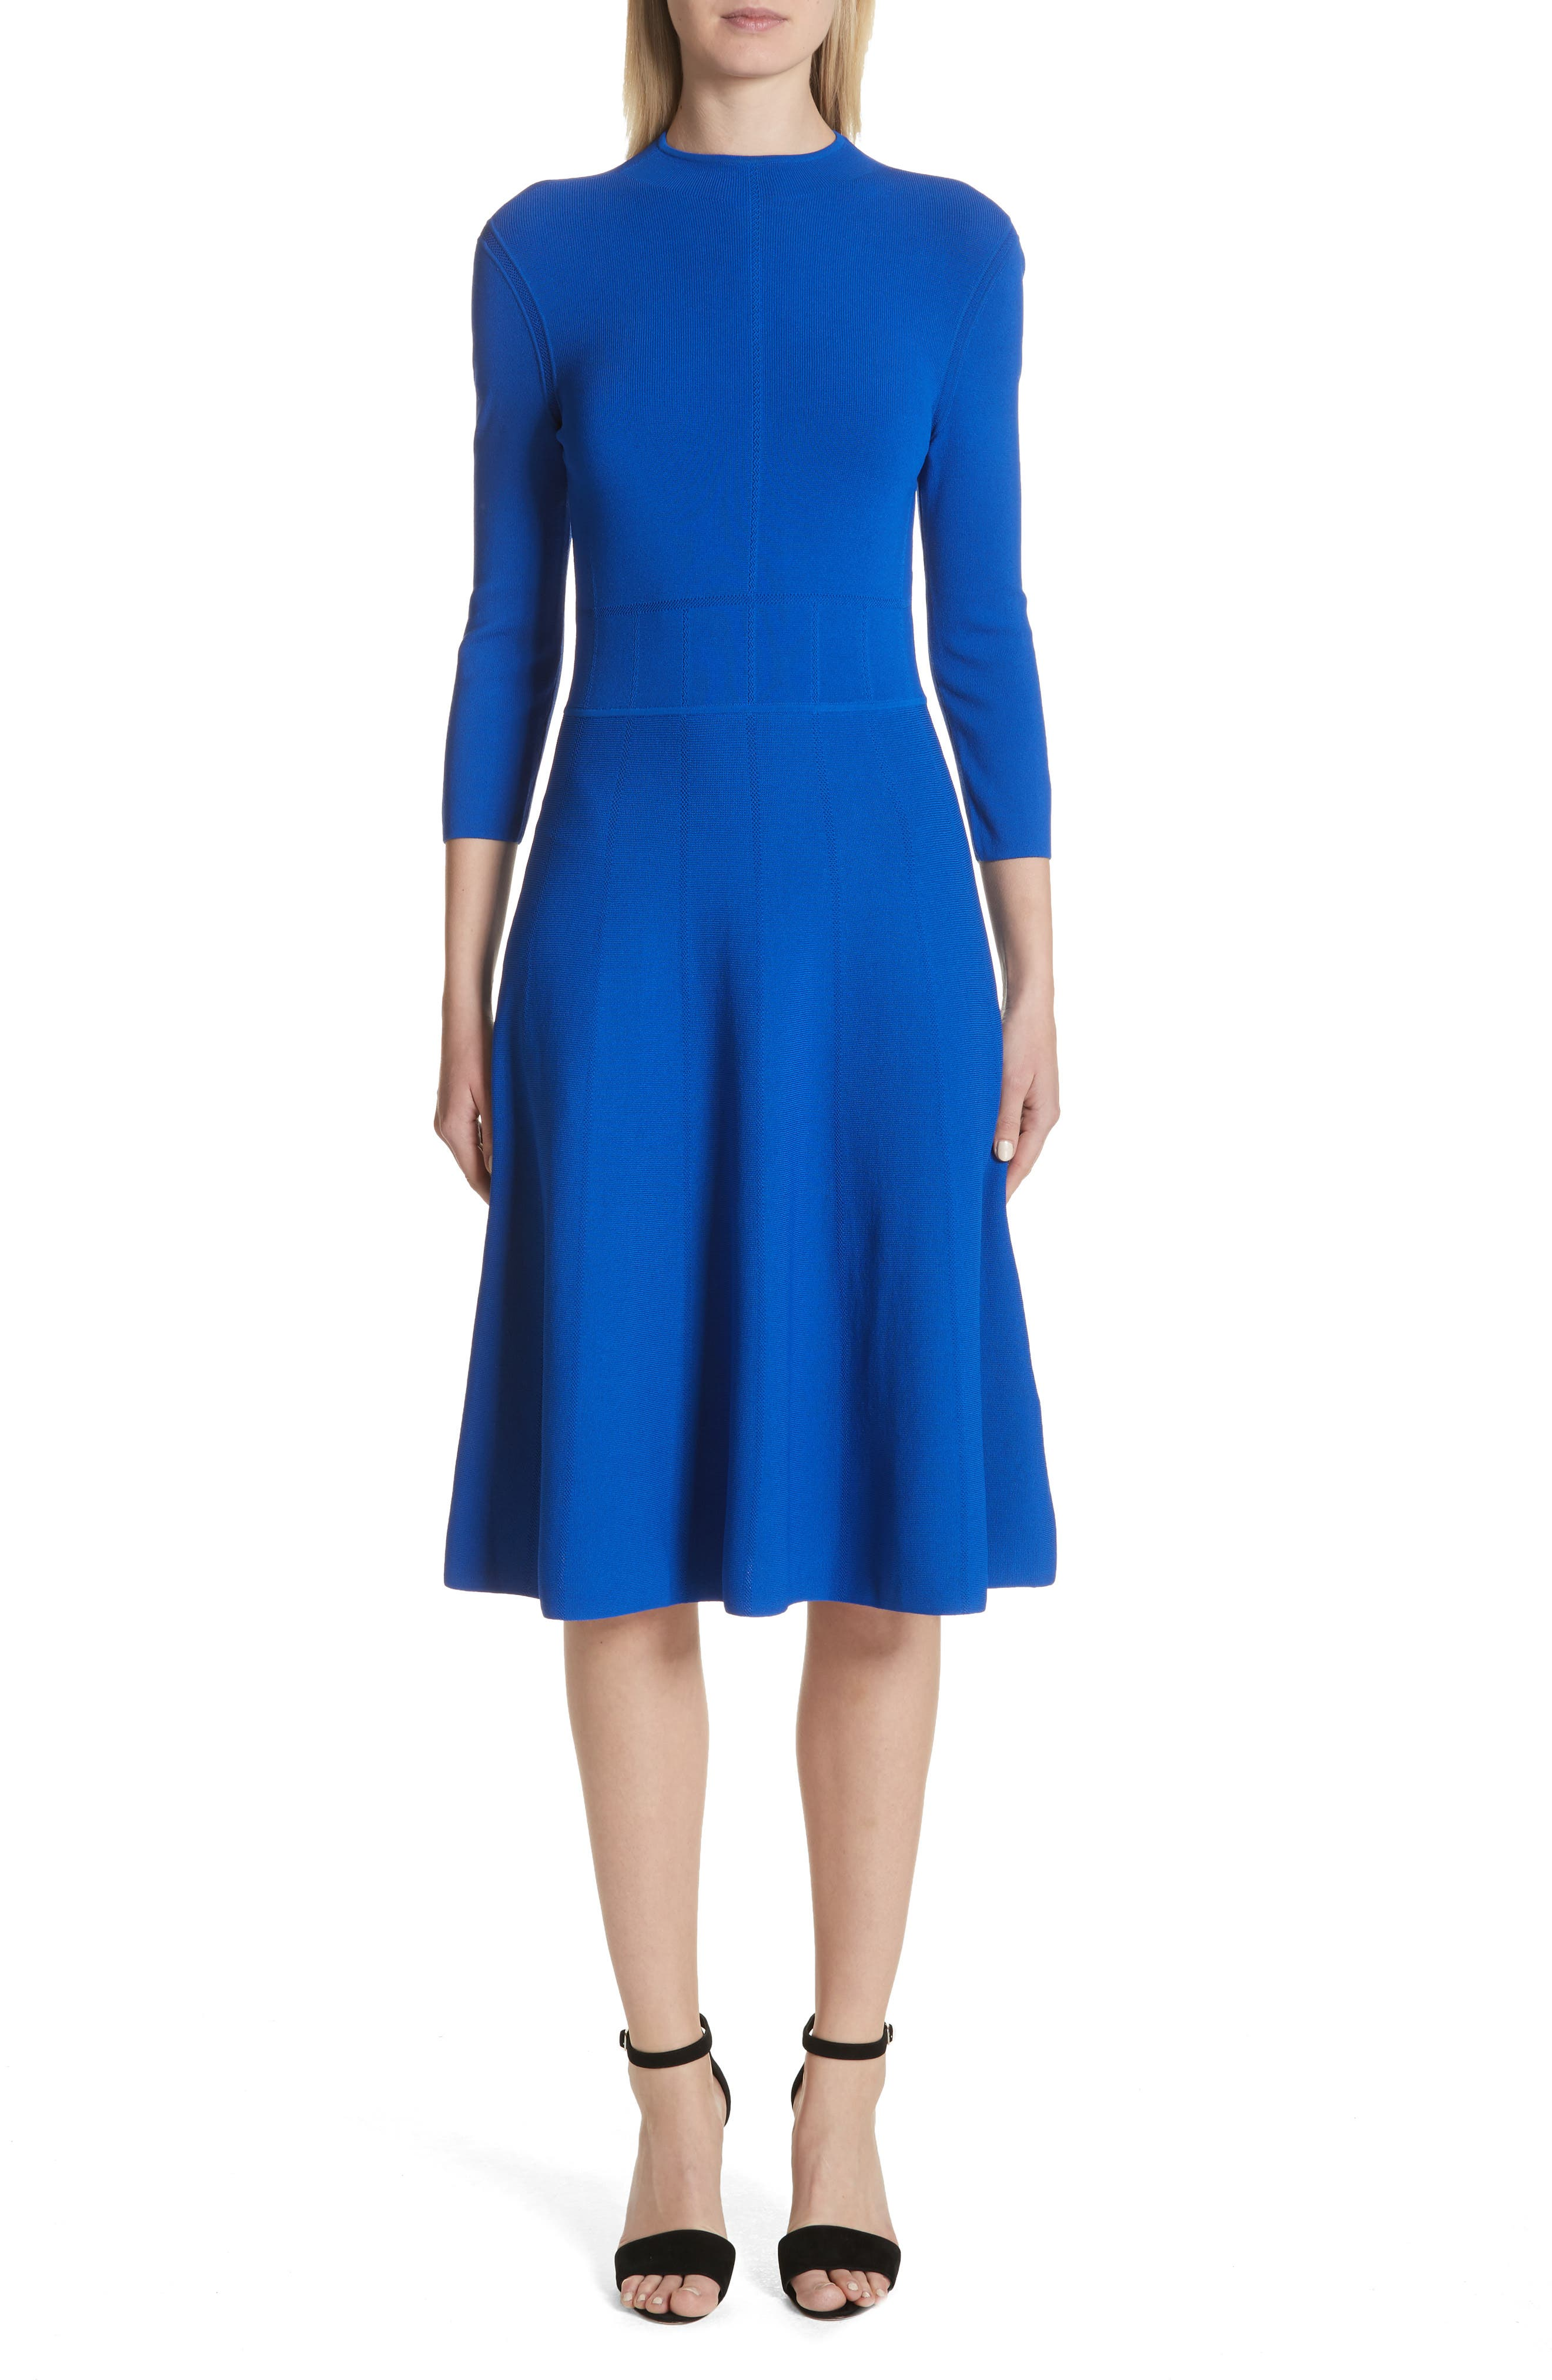 Alternate Image 1 Selected - Emporio Armani High Neck Fit & Flare Dress